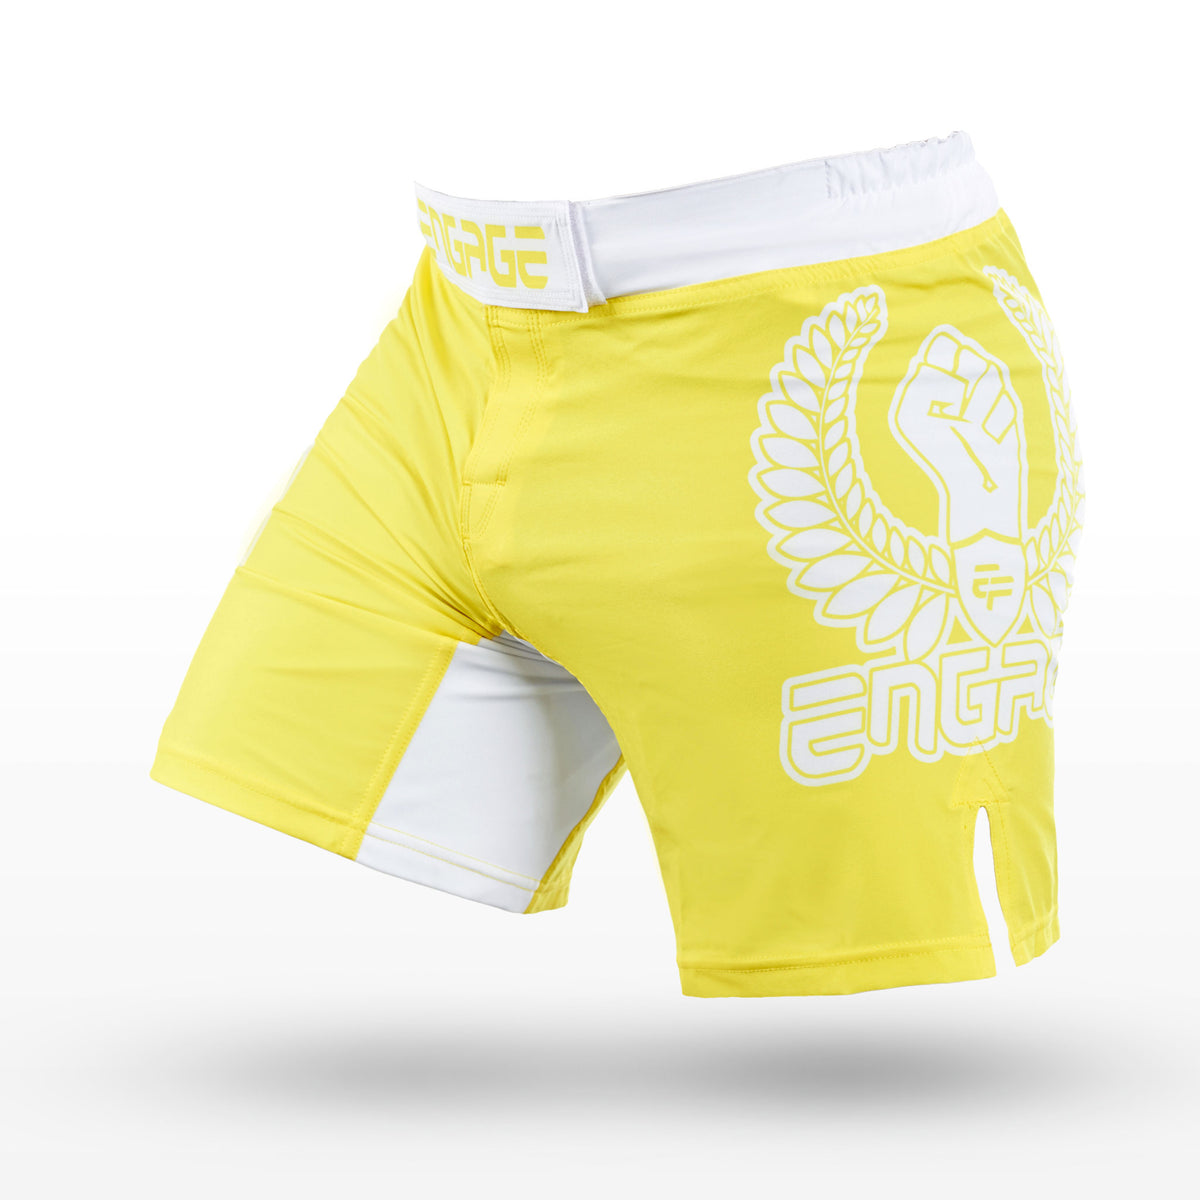 Engage MMA/K1 Fight Short - Sun God MMA / K1 Shorts Engage MMA Online Fight Store for Apparel, Fightwear and Fight Gear Equipment